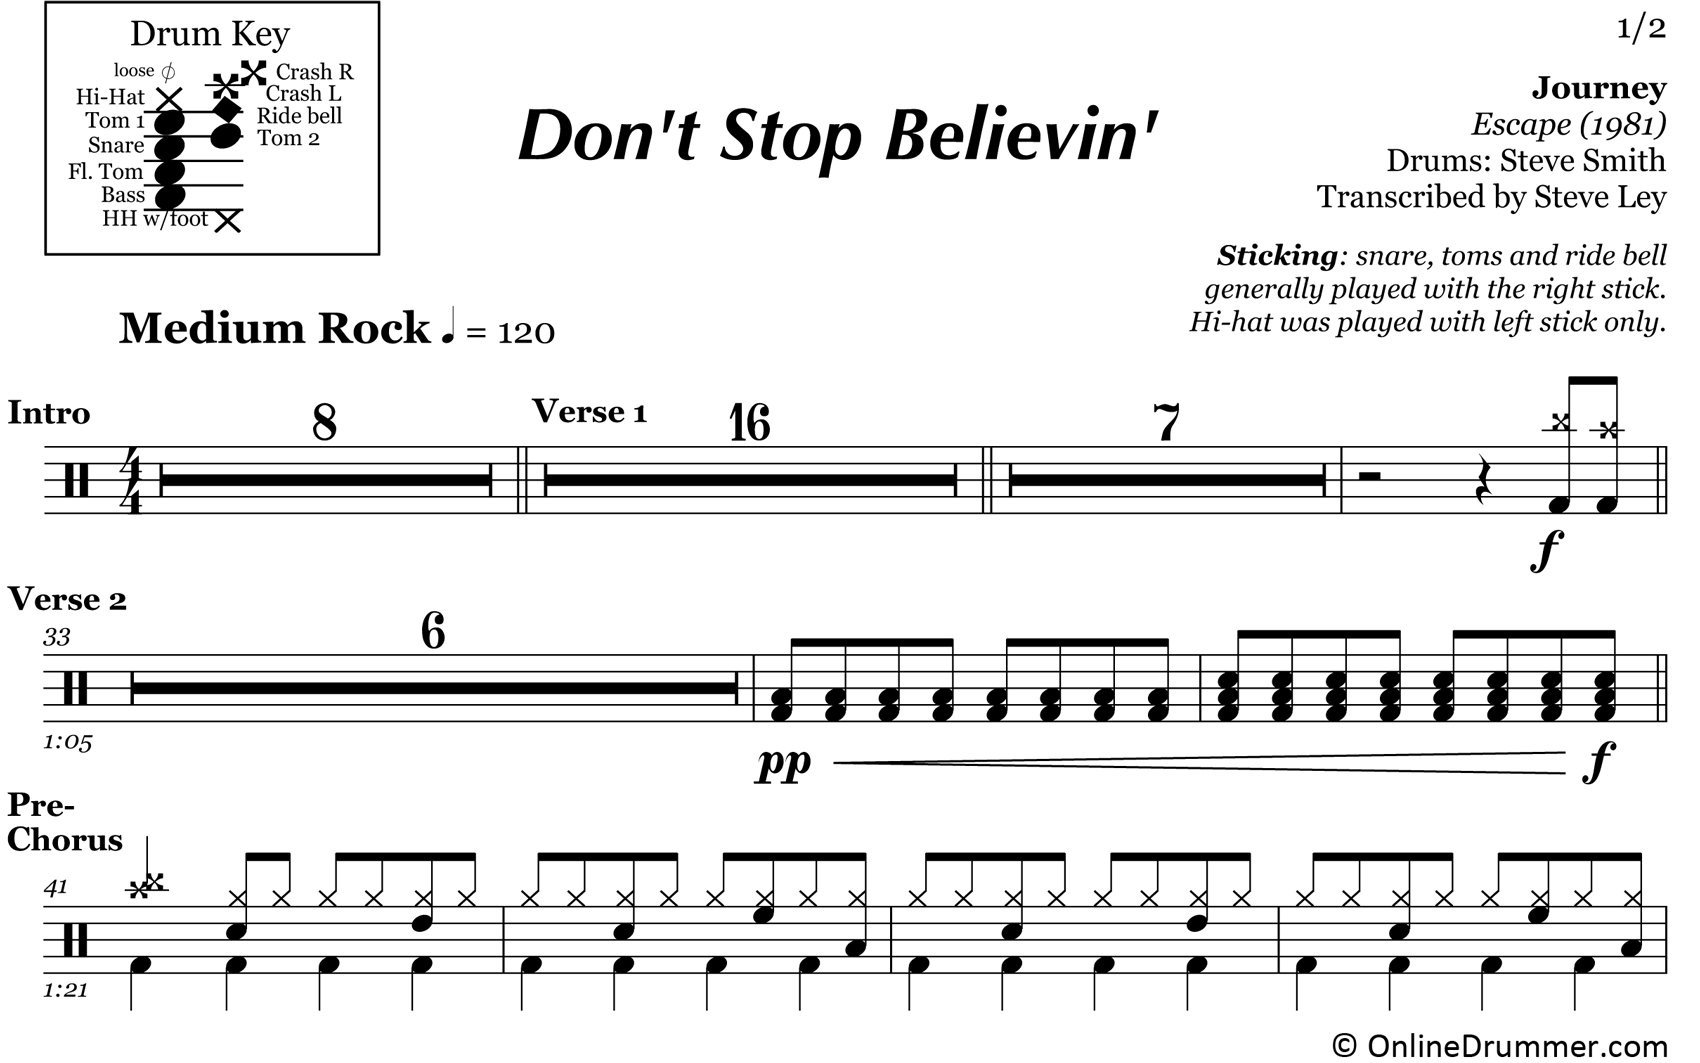 Don't Stop Believin' - Journey - Drum Sheet Music